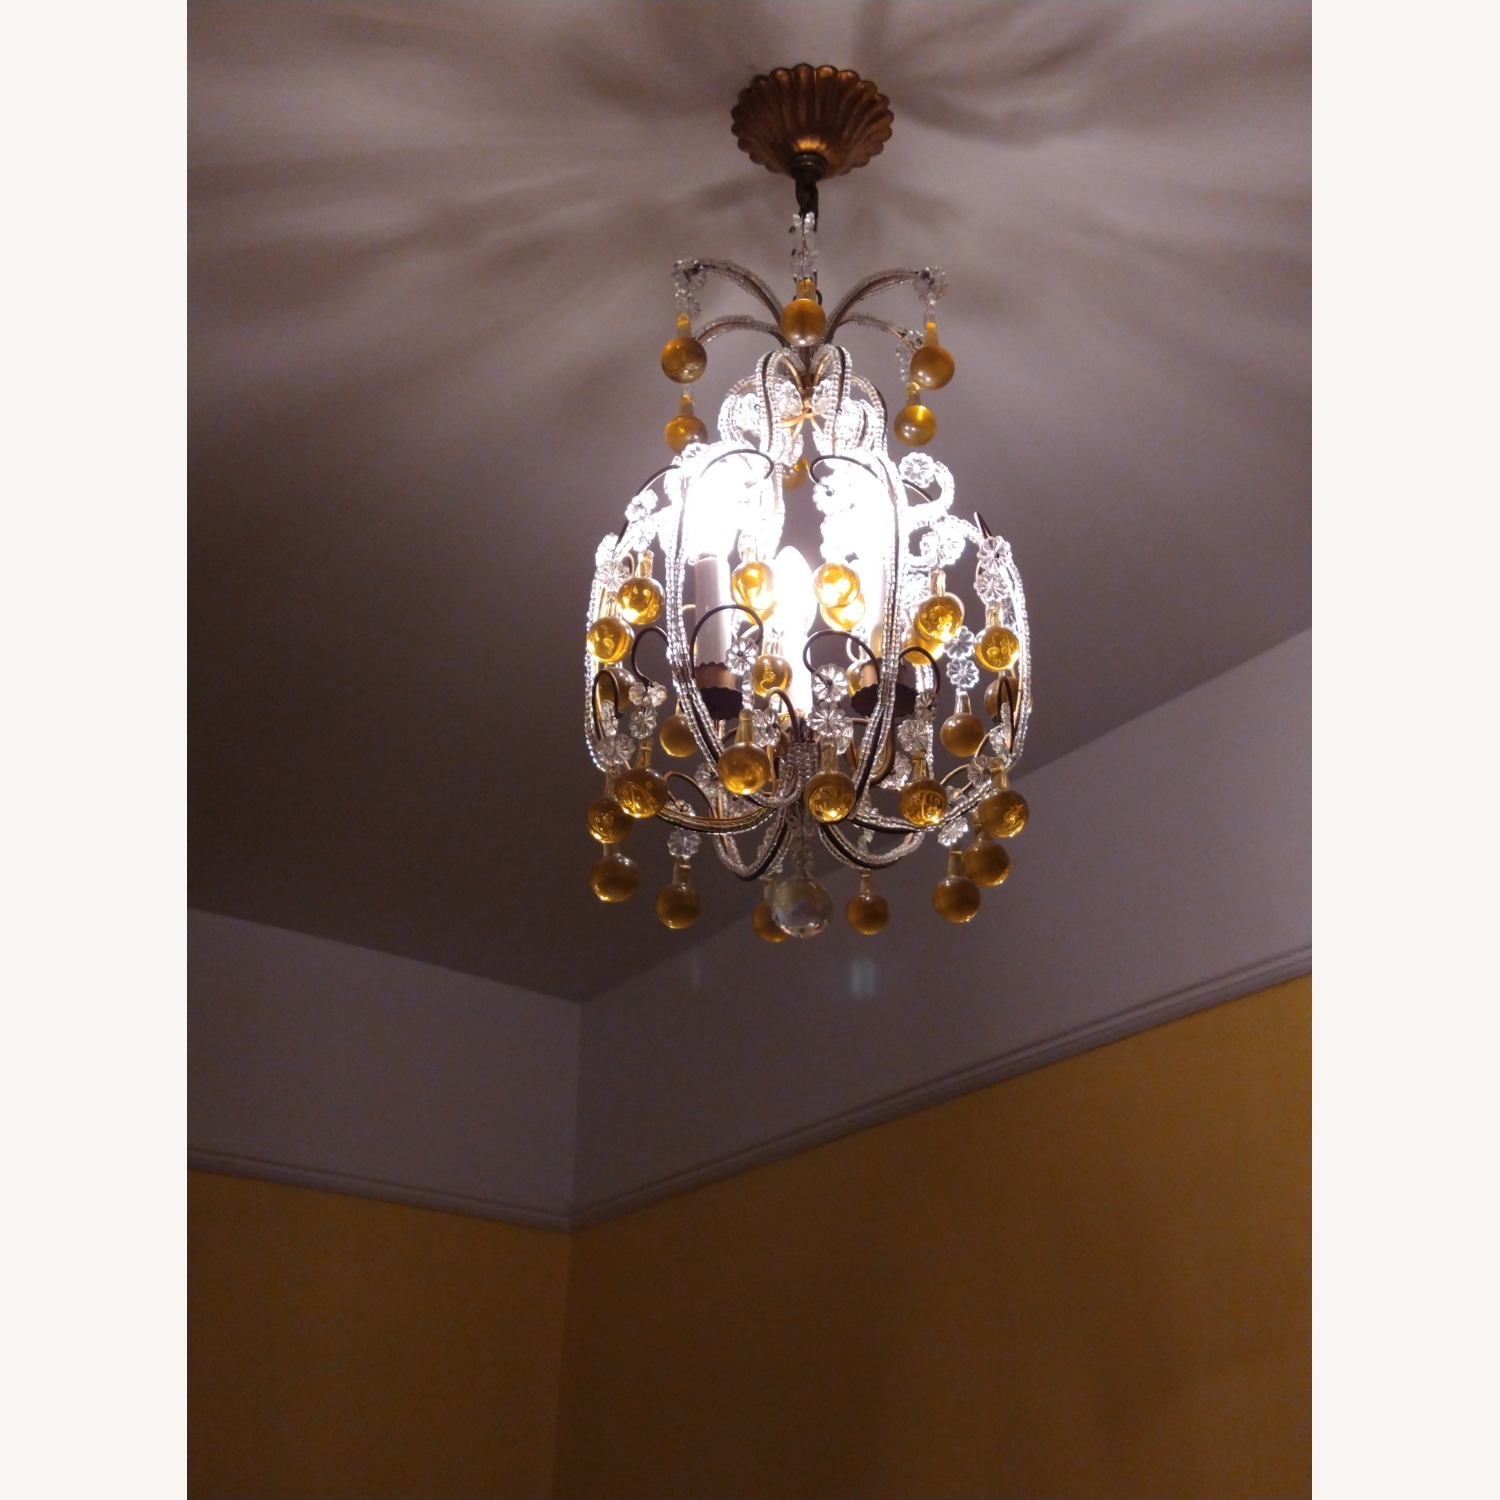 Vintage French Chandelier, Murano Drops - image-7